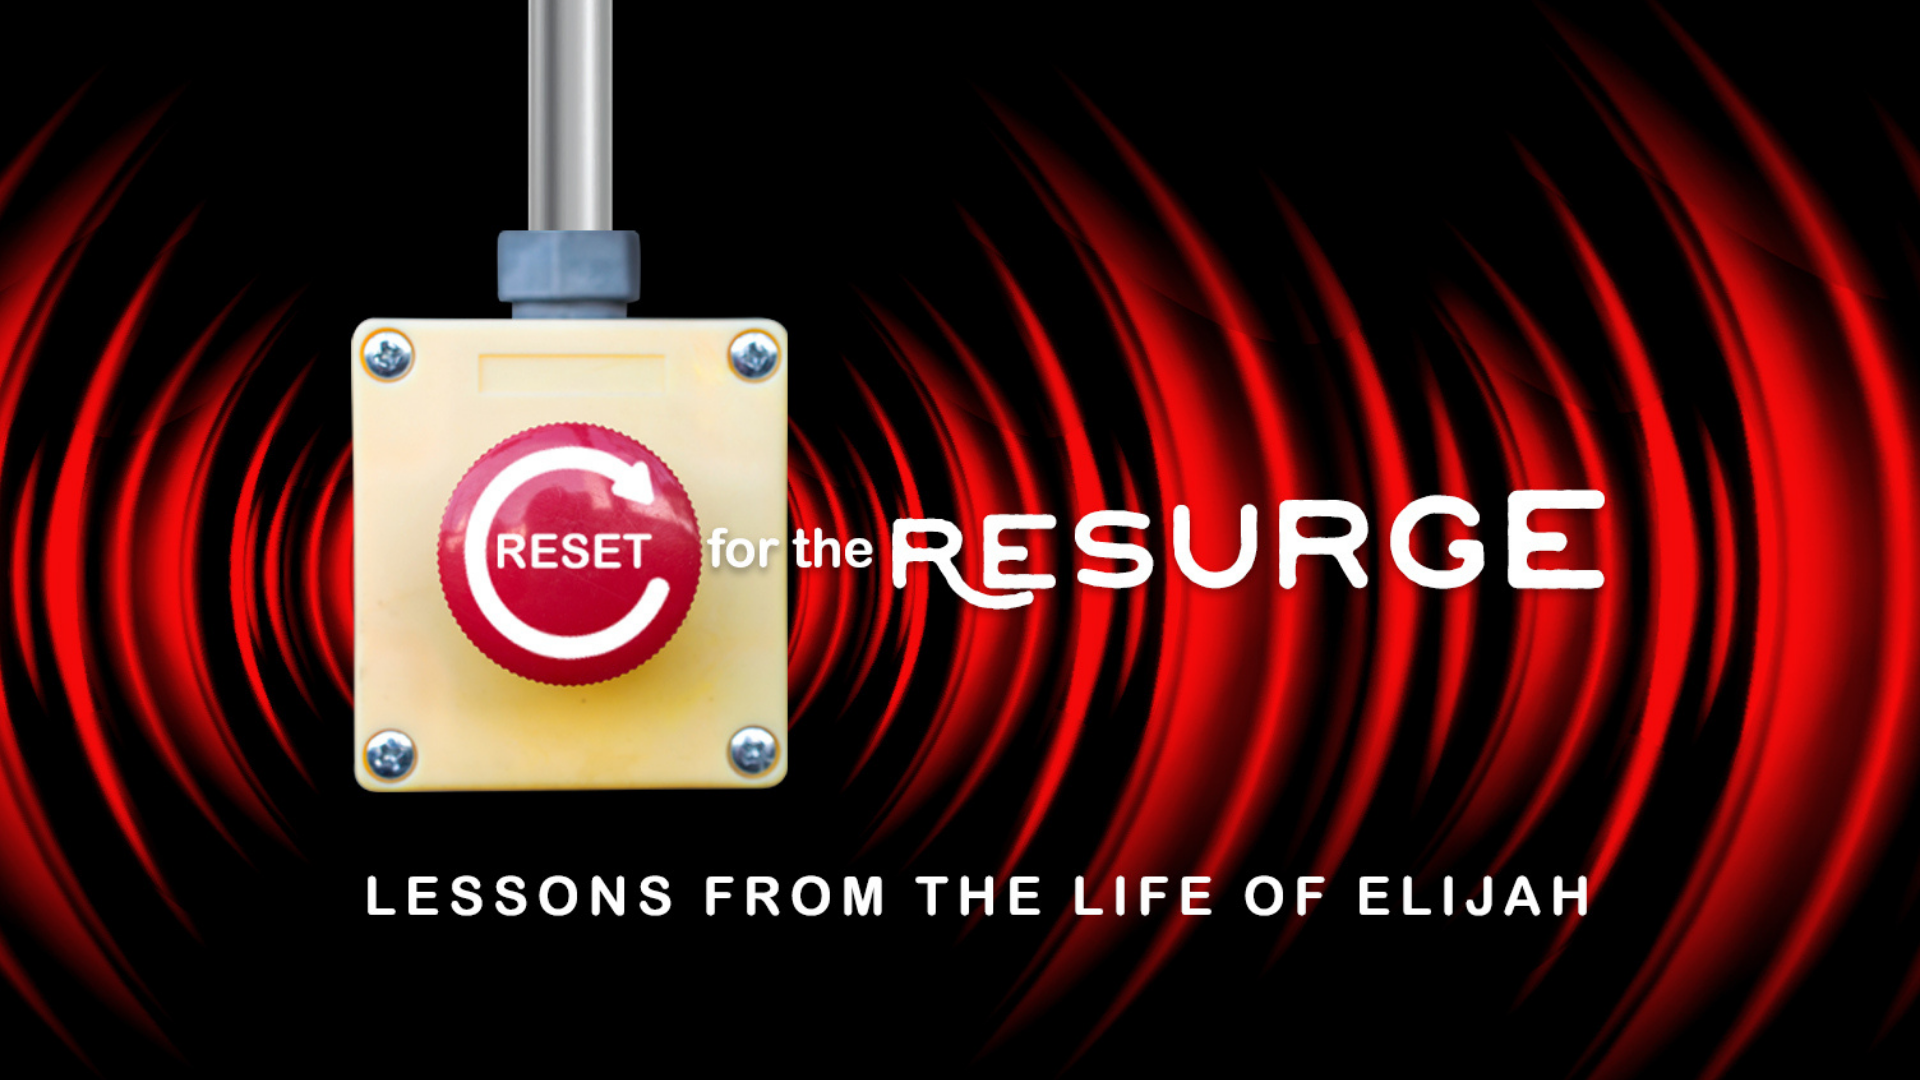 Reset for the Resurge